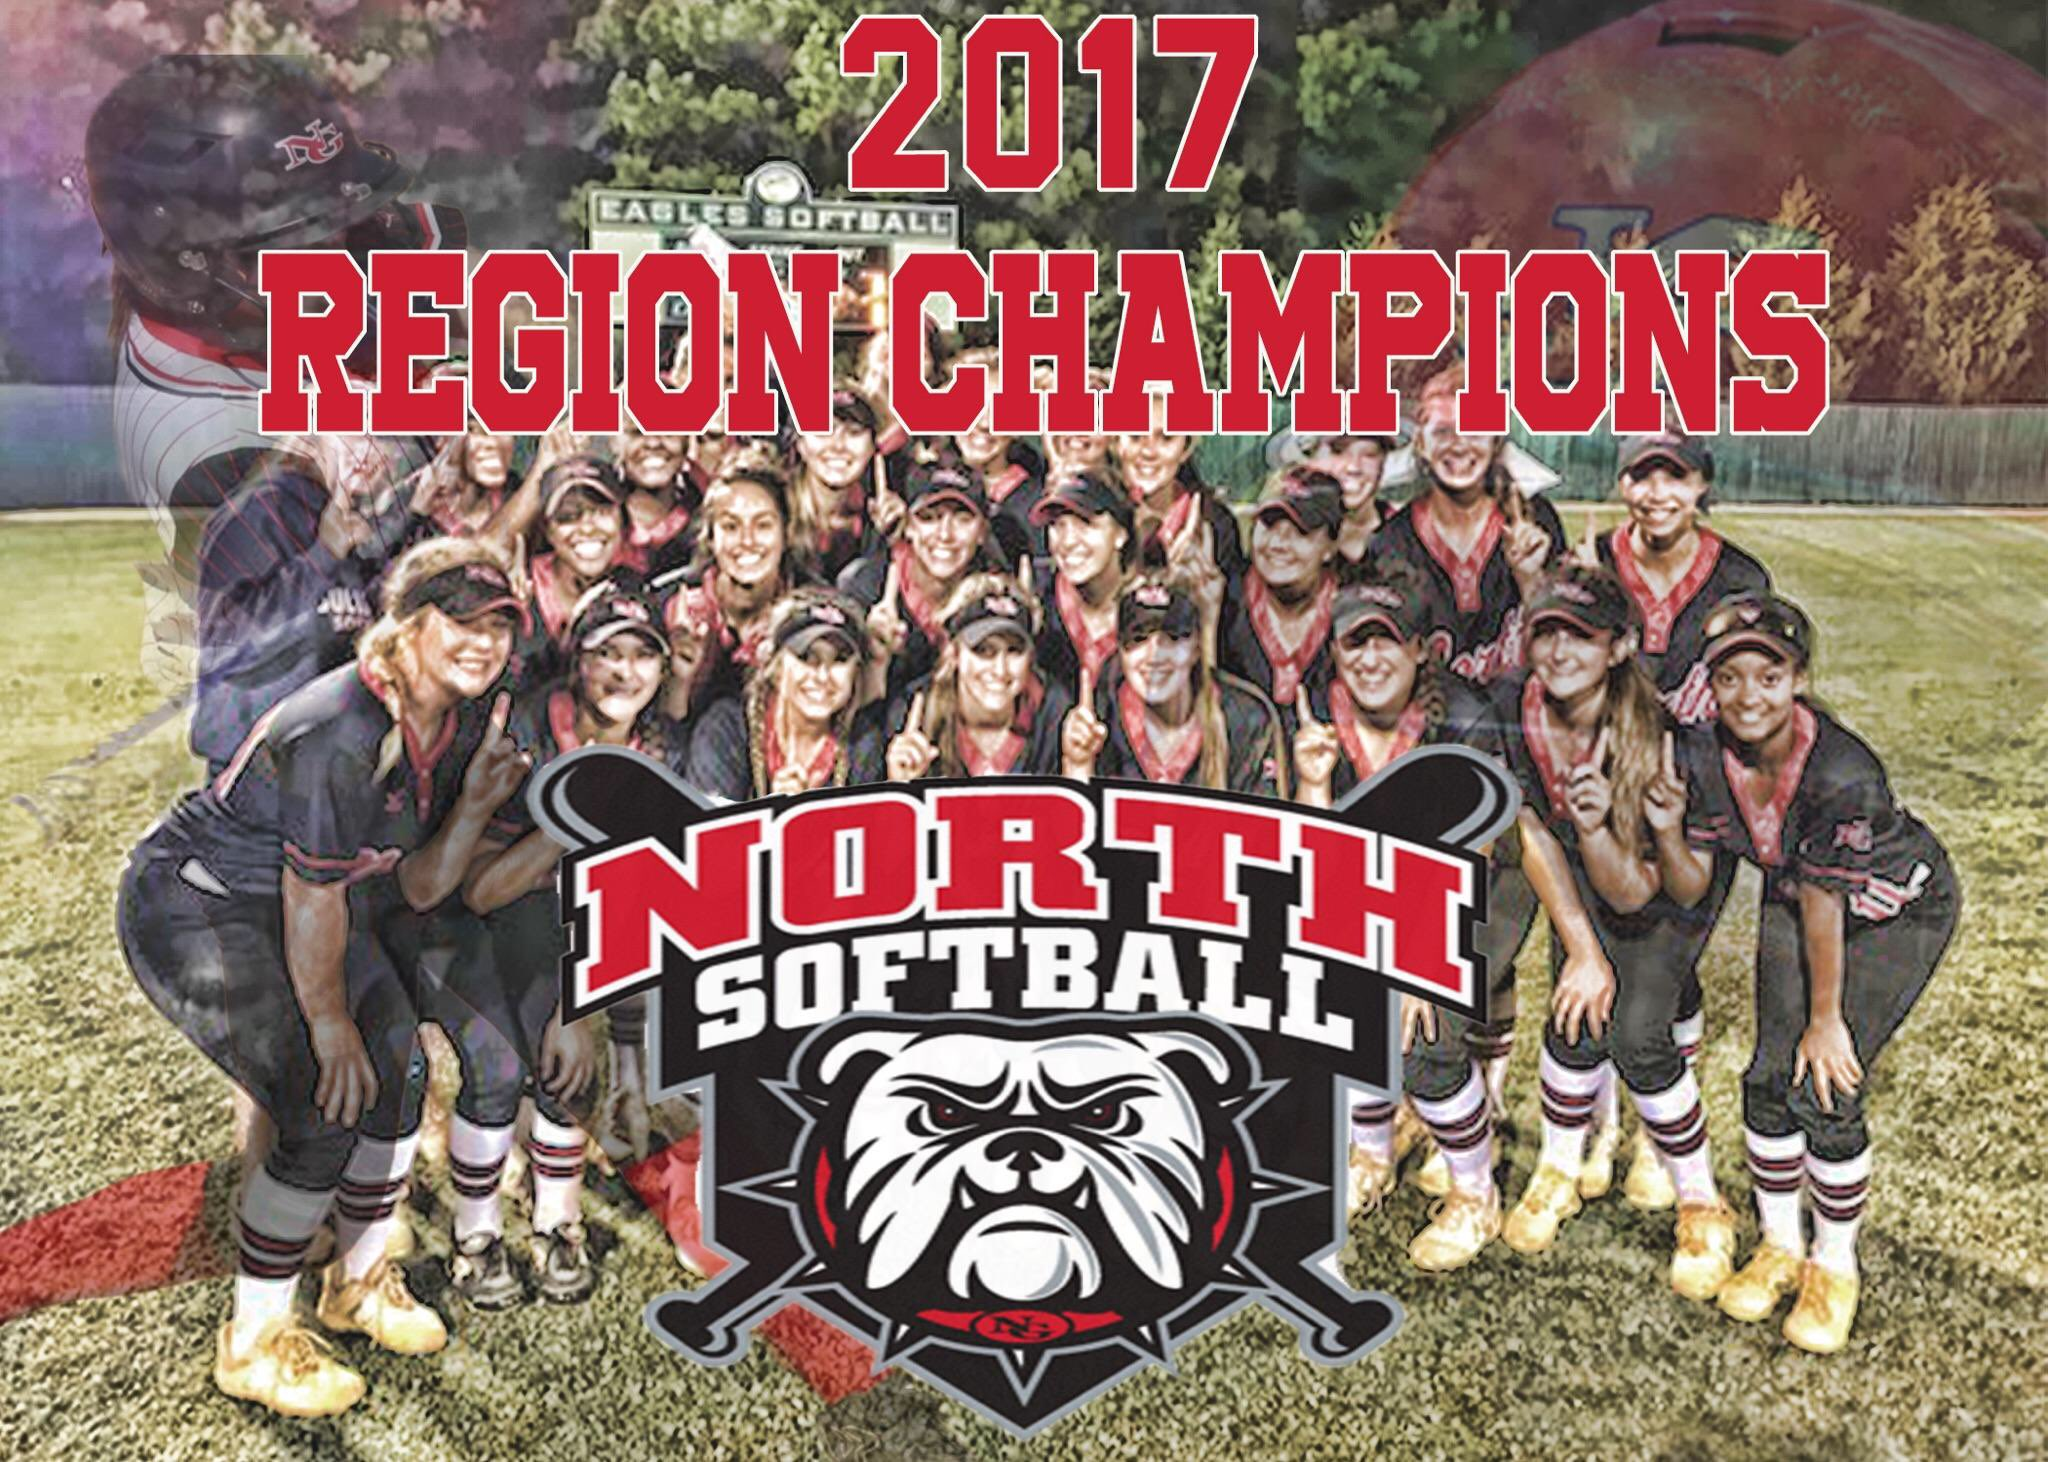 ... title. http://www.gwinnettprepsports.com/schools /collins_hill/dennis-pitches-north-gwinnett-past-collins-hill-for-region-softball/article_f8e3125a-a96f-  ...